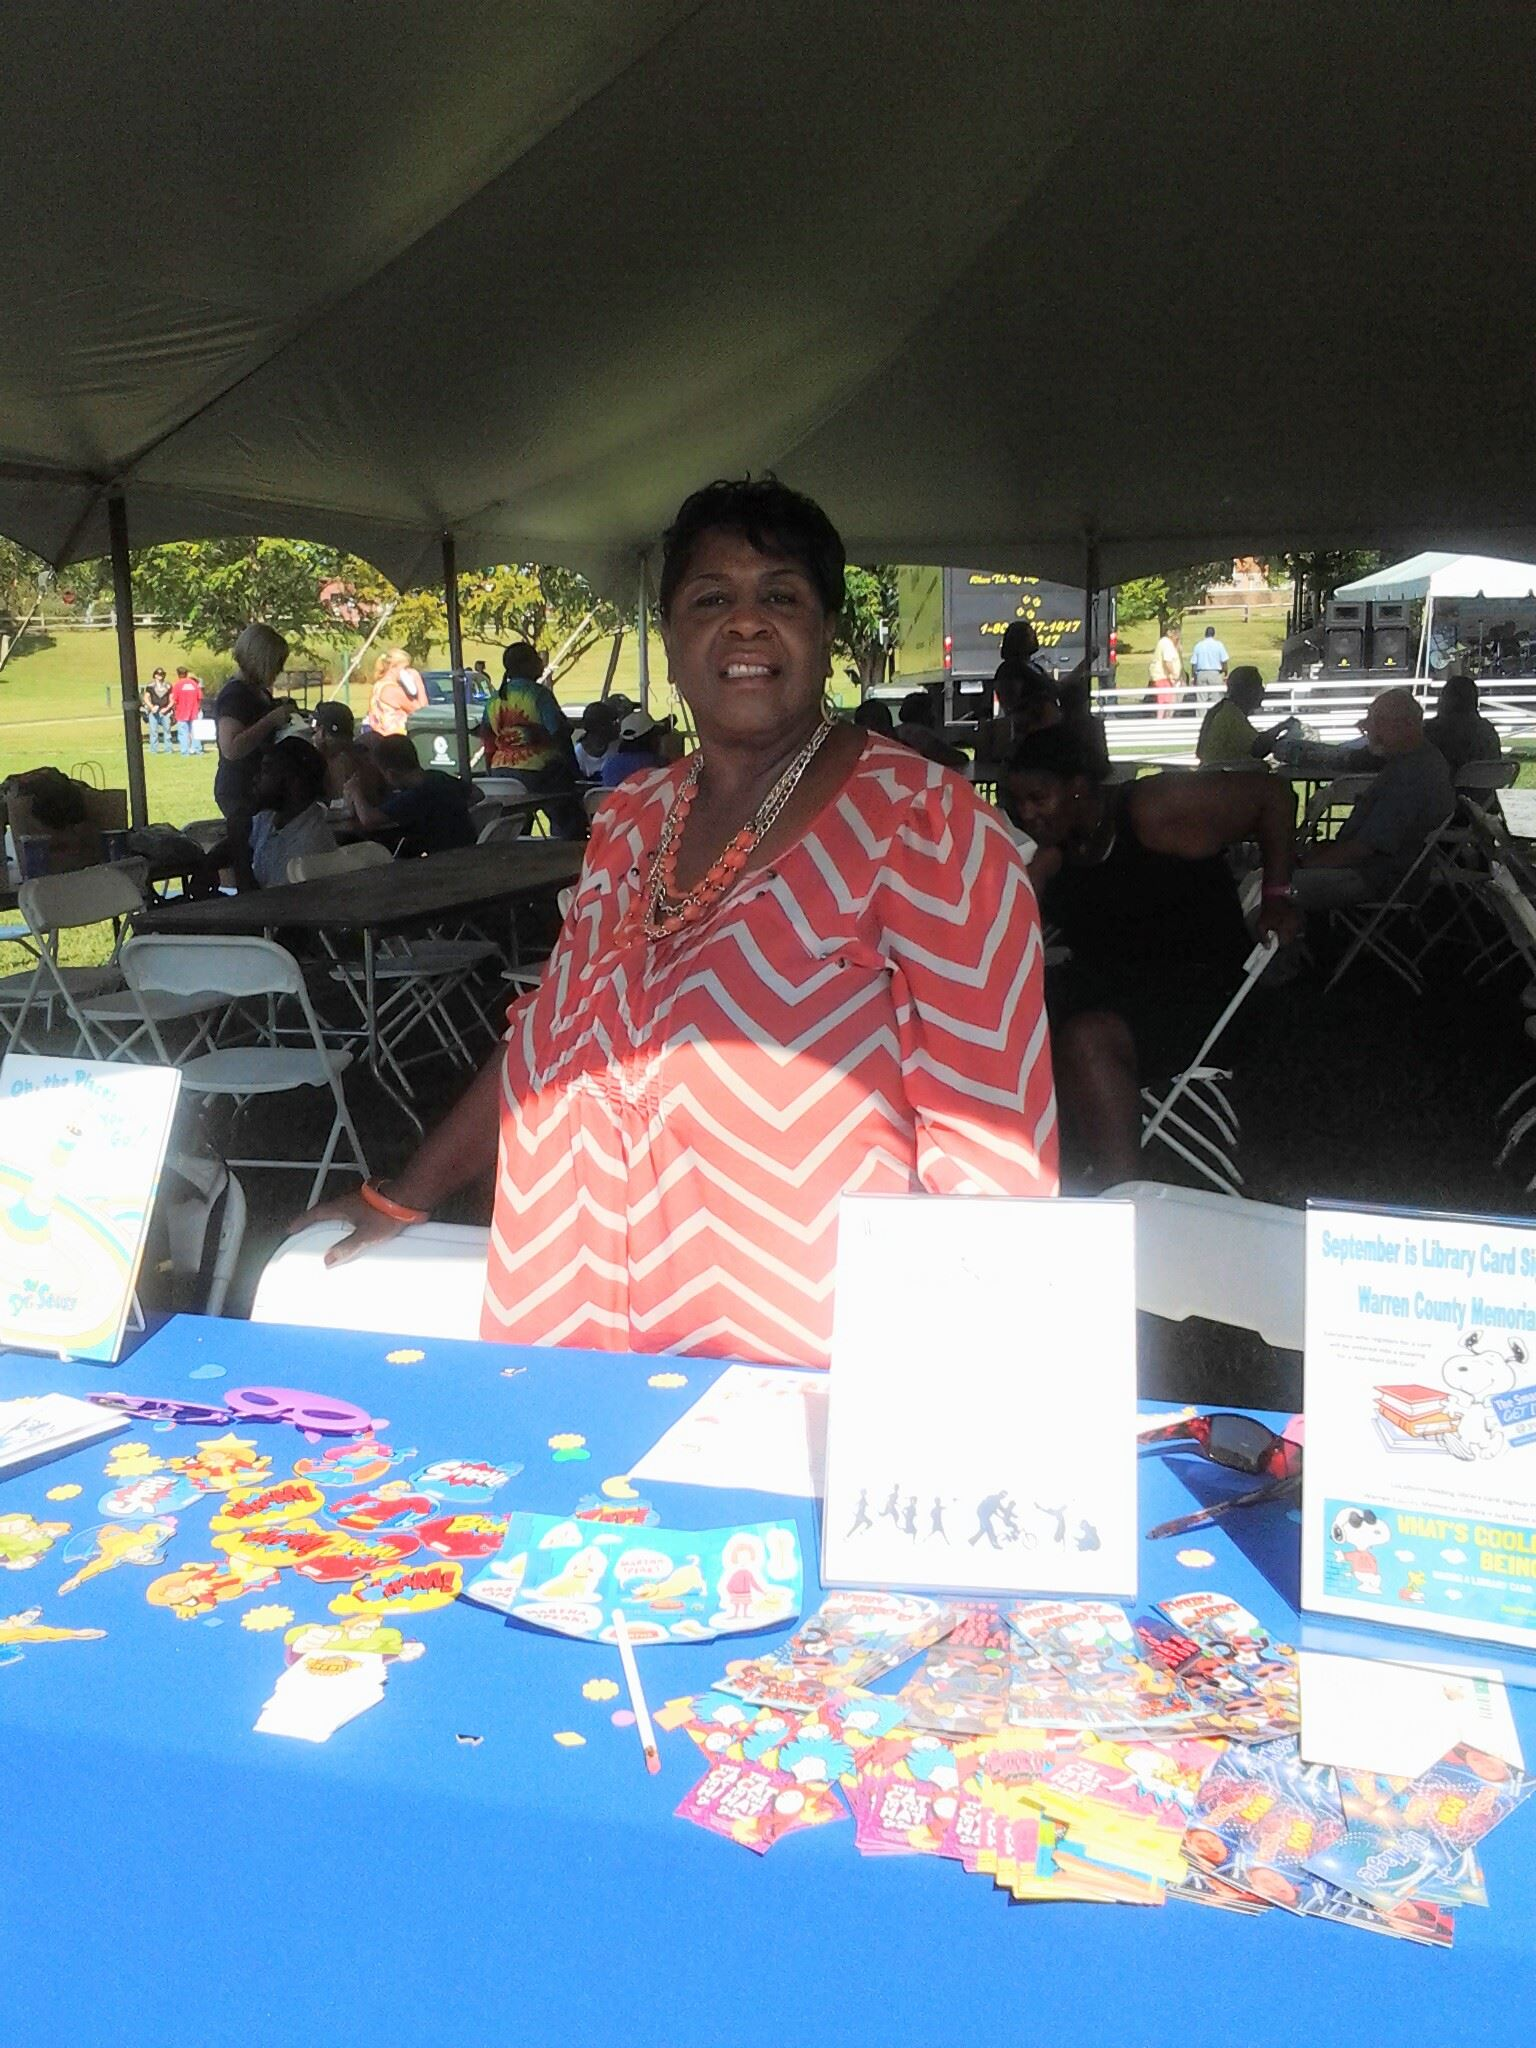 Mary Bullock at the Youth Outreach Services table